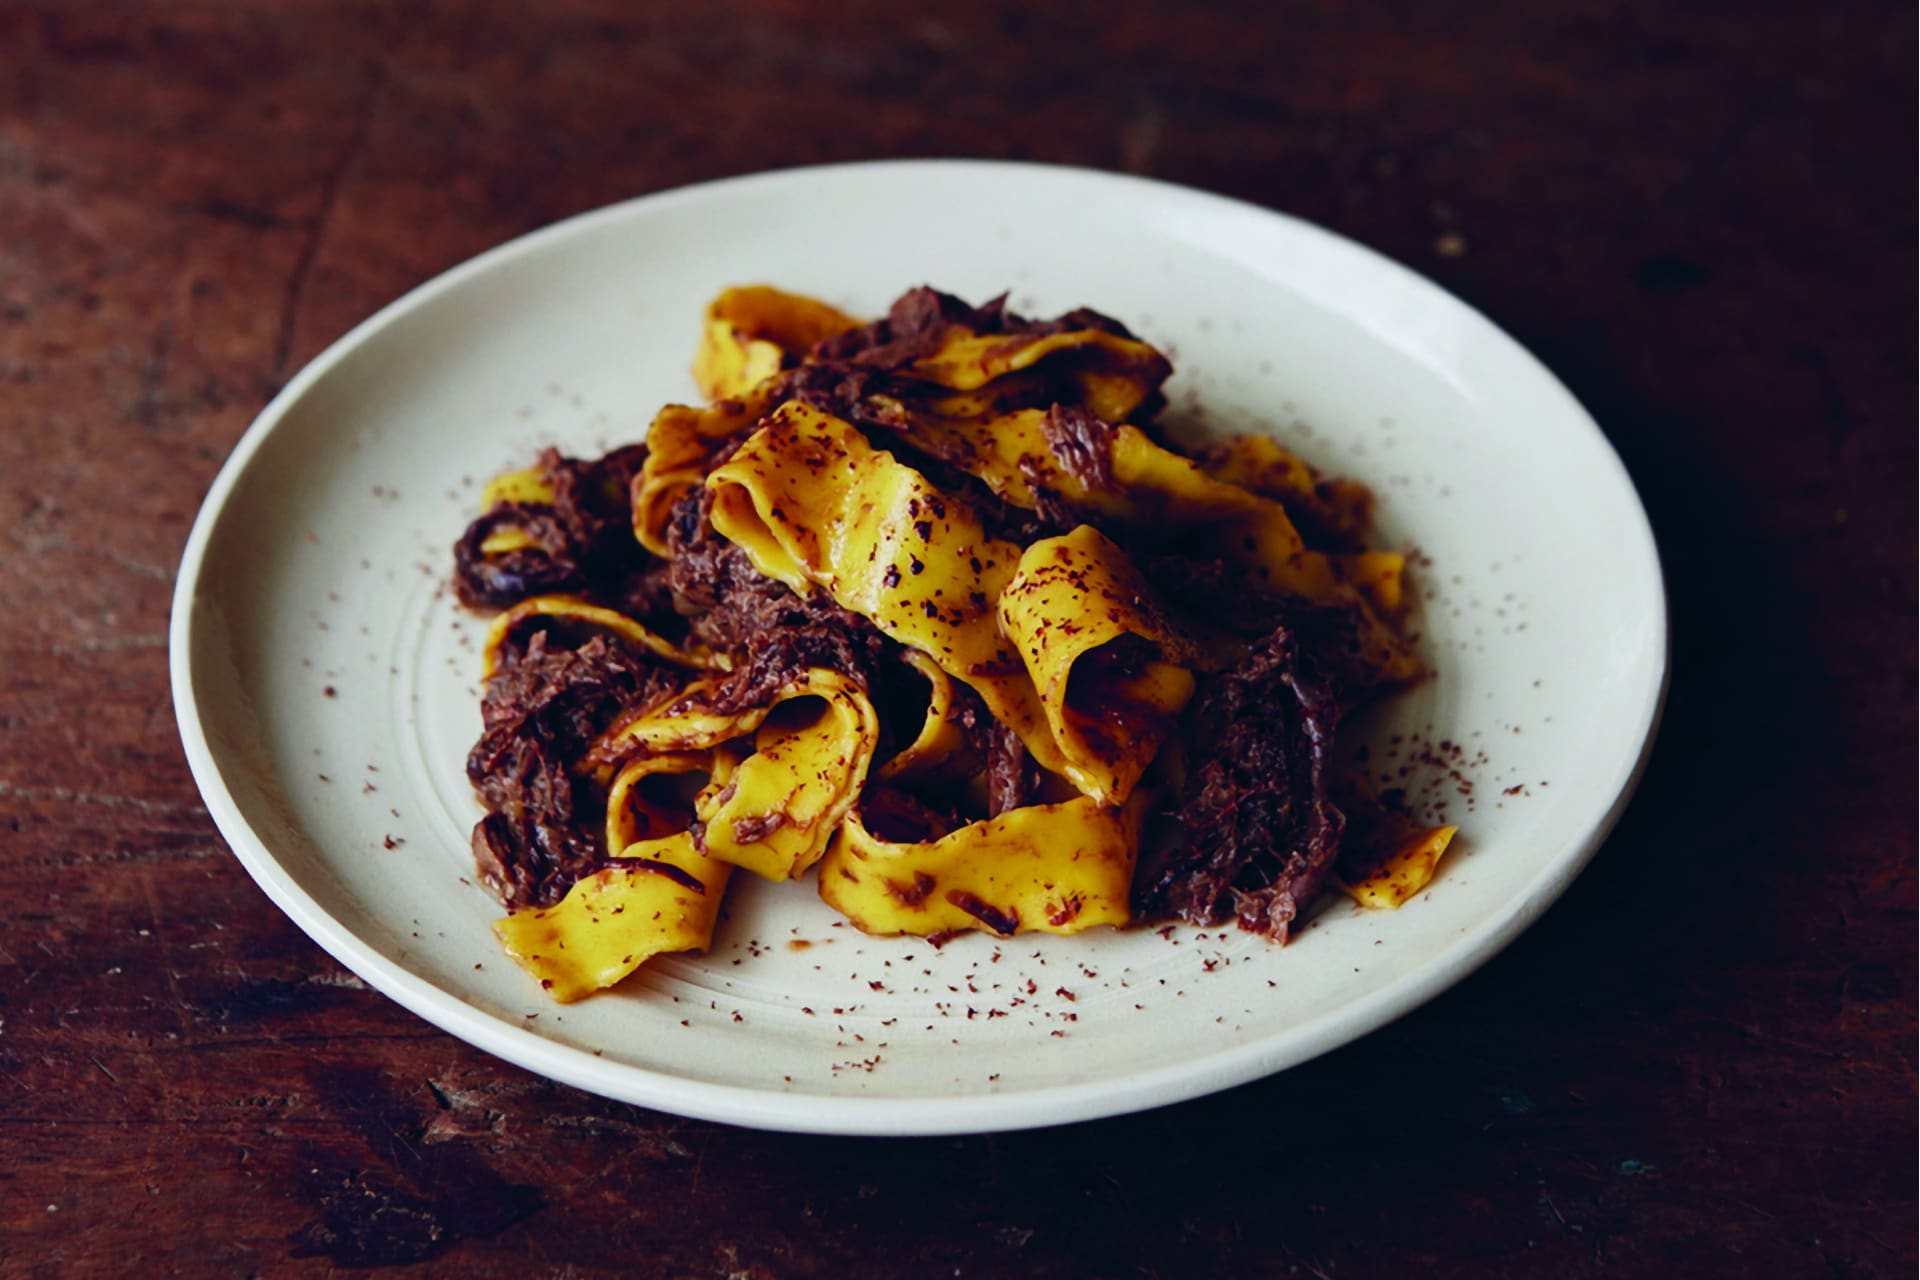 Giorgio Locatelli pappardelle with hare red wine and cacao